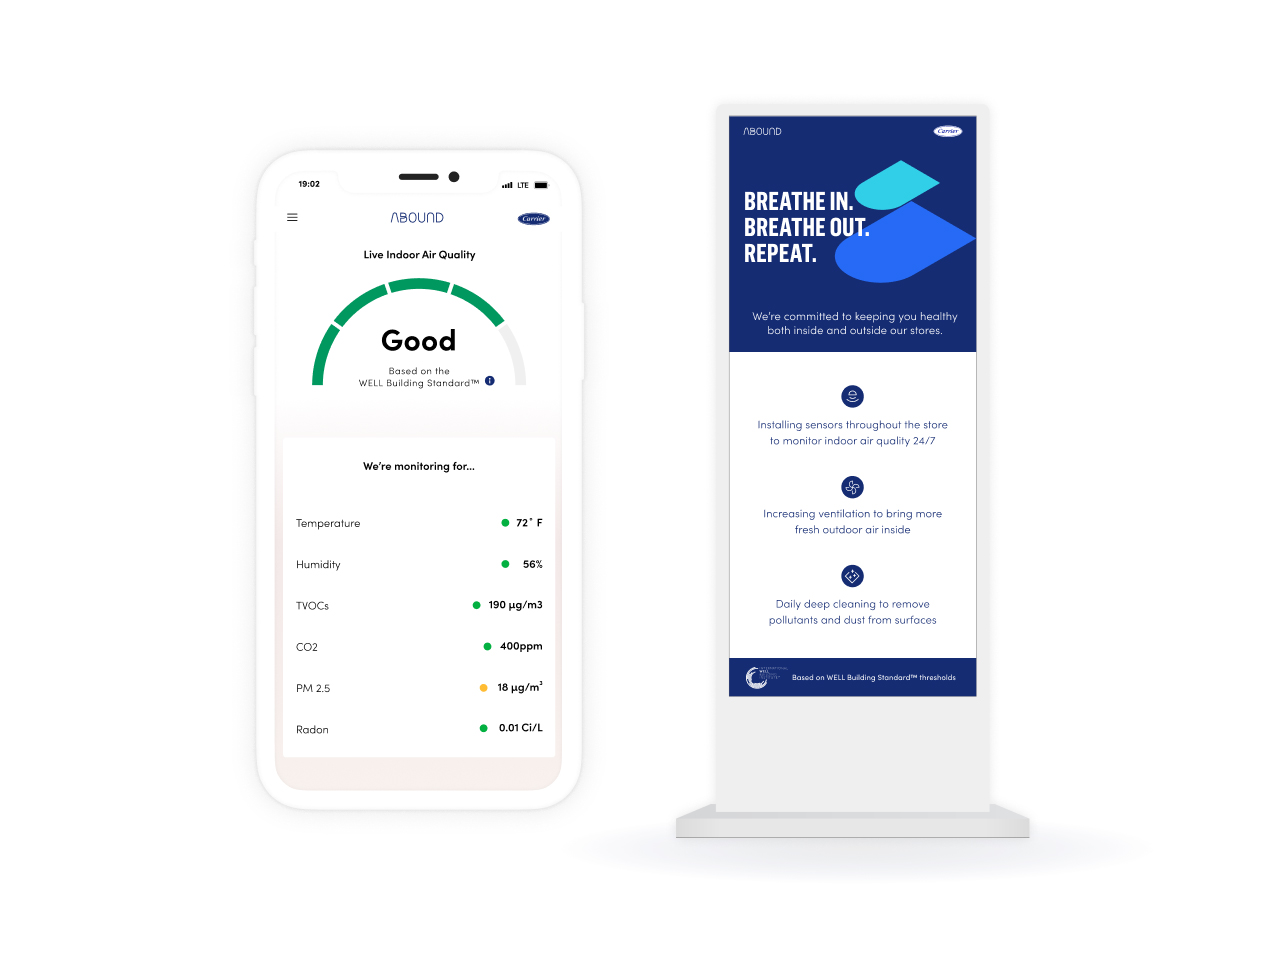 Abound will allow building owners to communicate building health strategies, health performance metrics, or the live indoor air quality summary to occupants through digital displays, mobile applications, or existing digital experiences.